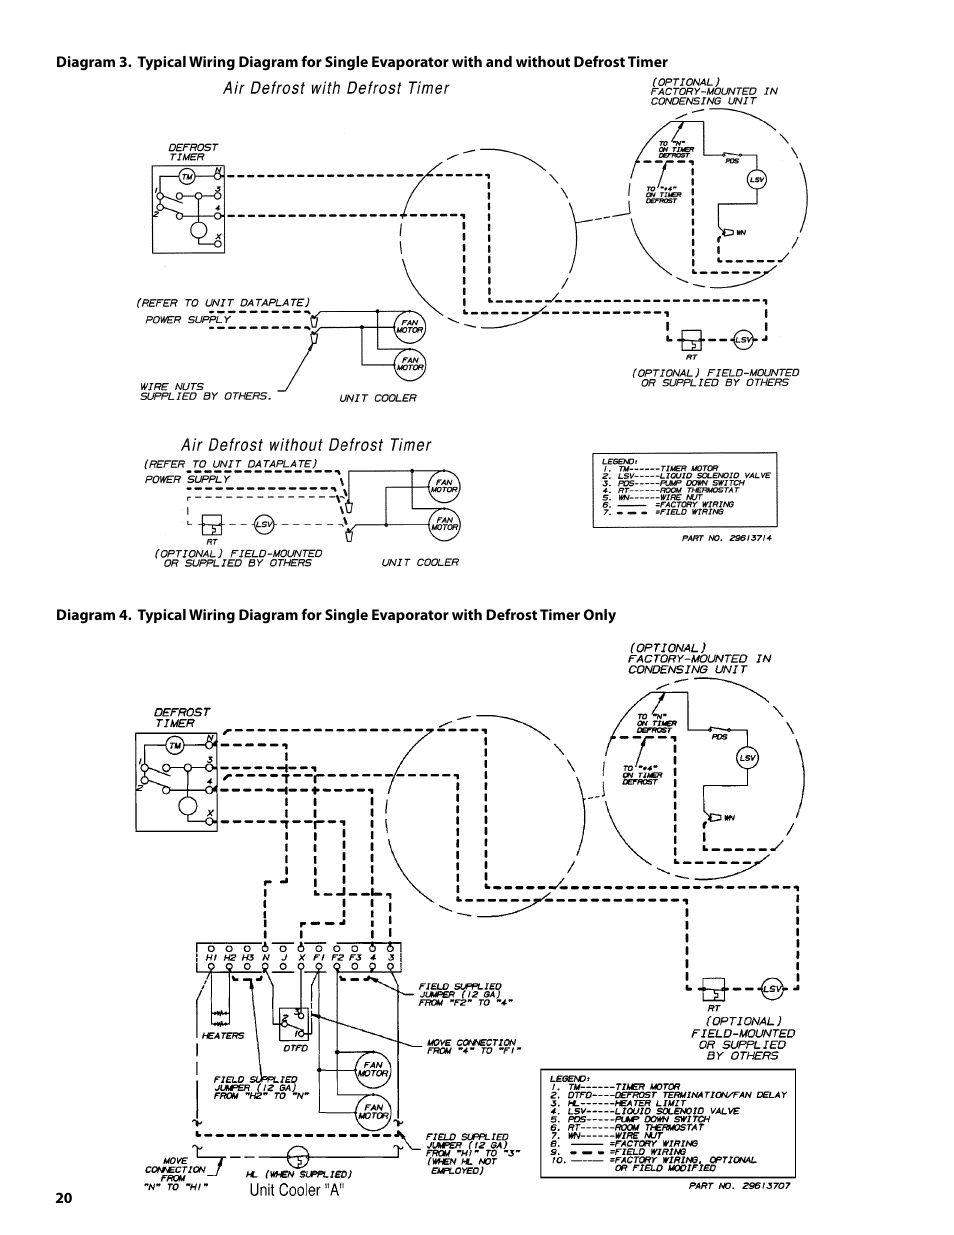 heatcraft refrigeration products condensing units h im cu user Electrical Box Wiring Diagram freezer evaporator coil wiring diagram